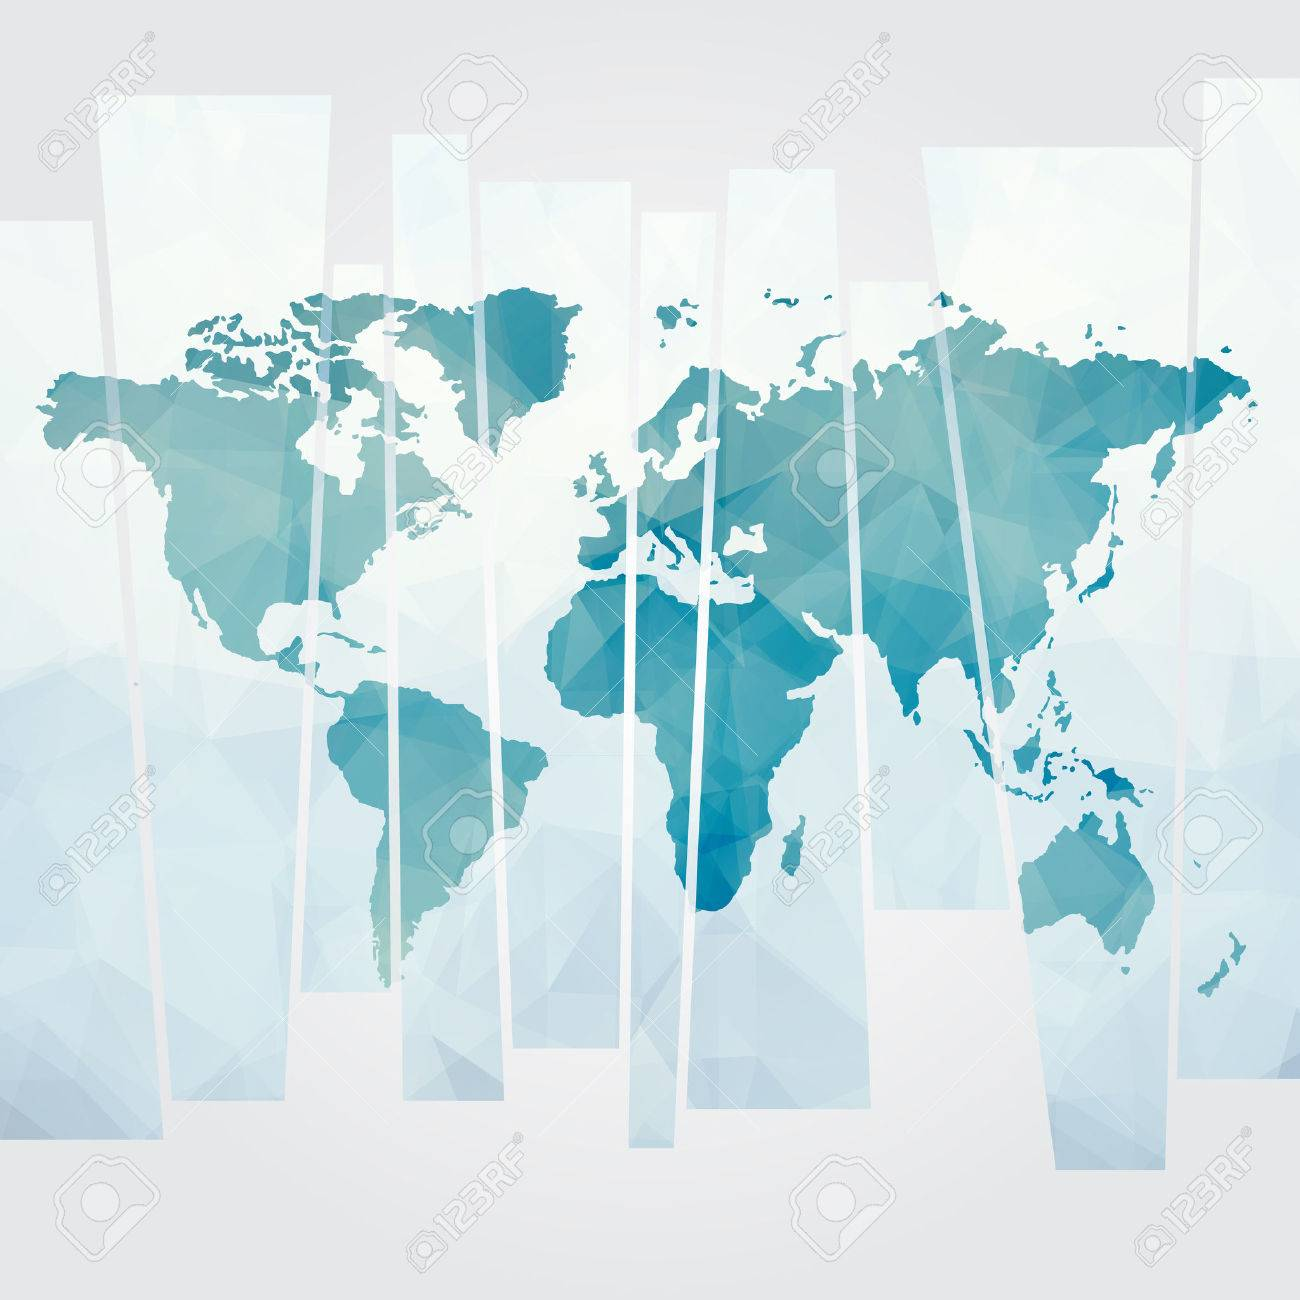 Modern concept of world map vector file royalty free cliparts modern concept of world map vector file stock vector 27580153 gumiabroncs Images